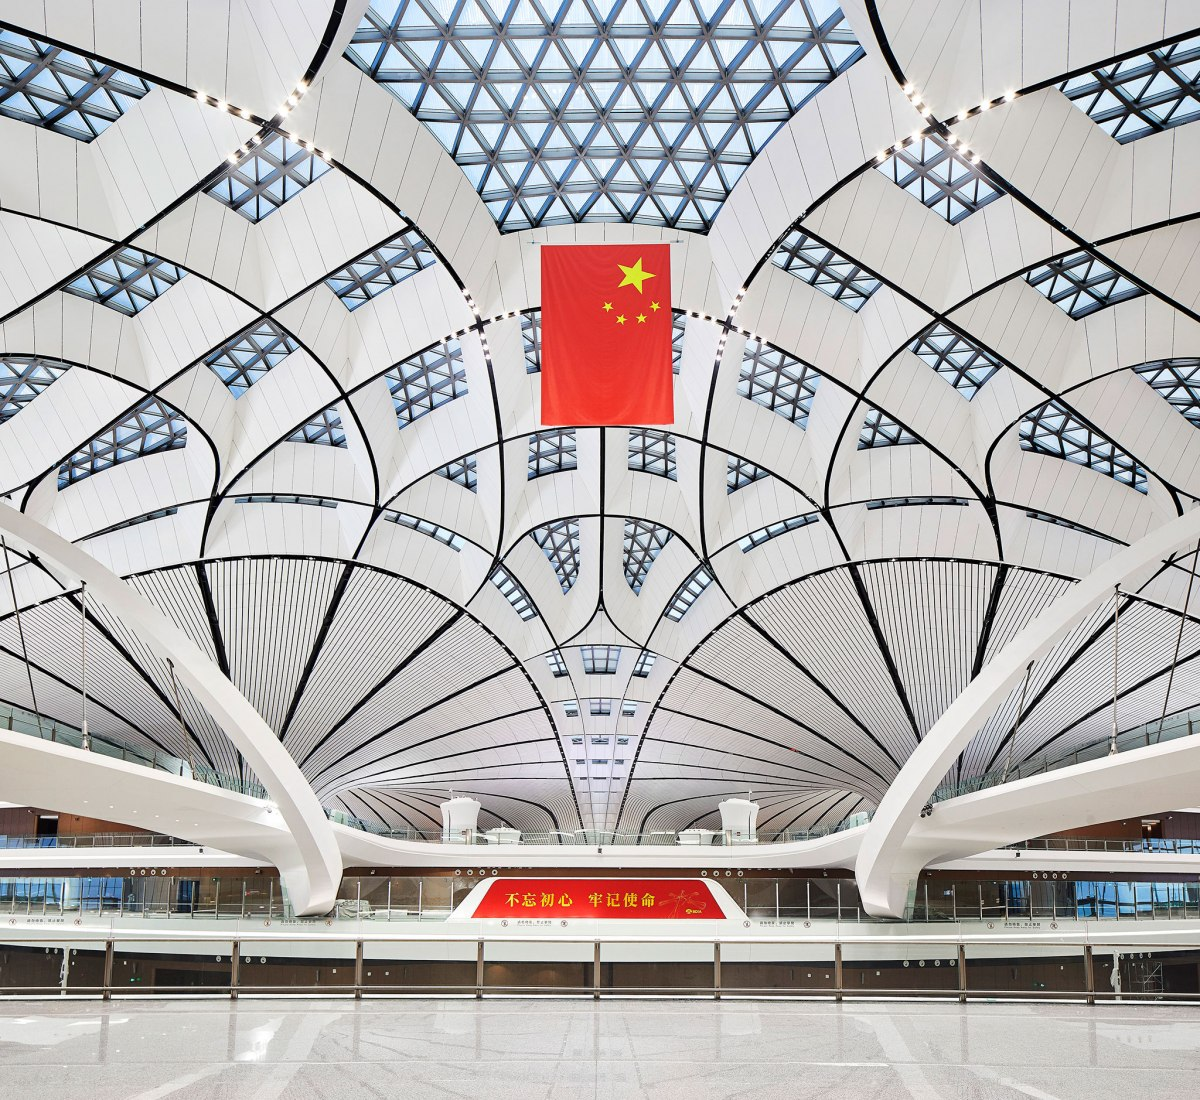 Beijing Daxing International Airport by Zaha Hadid Architects. Photograph by Hufton+Crow.